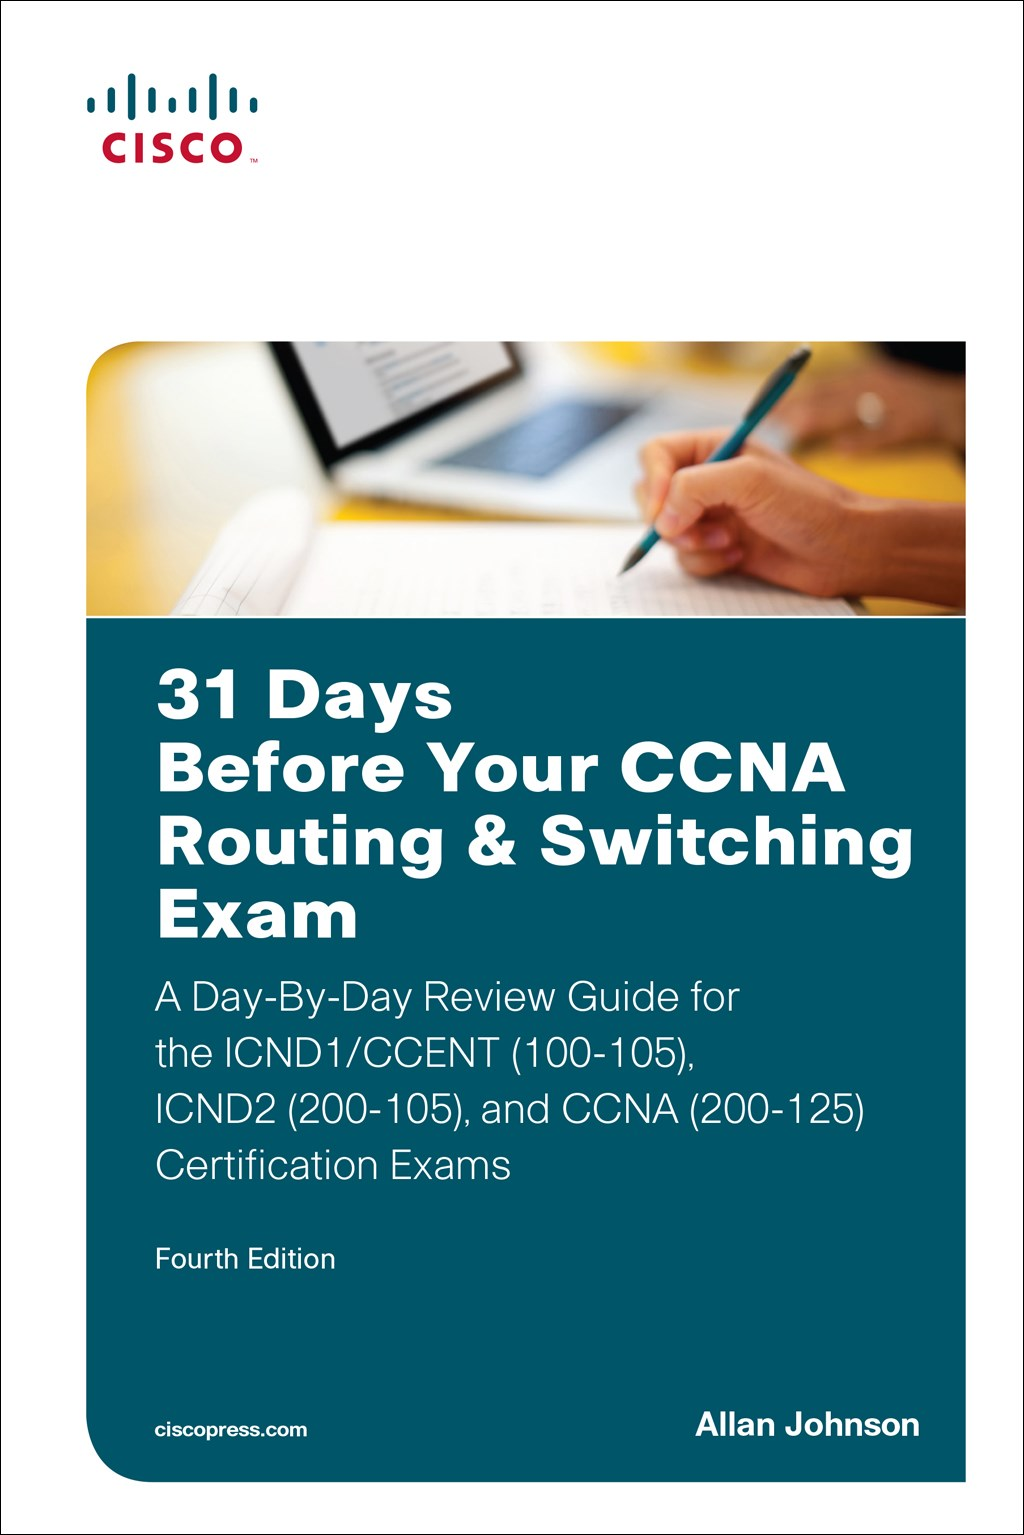 Ccna study guide book pdf